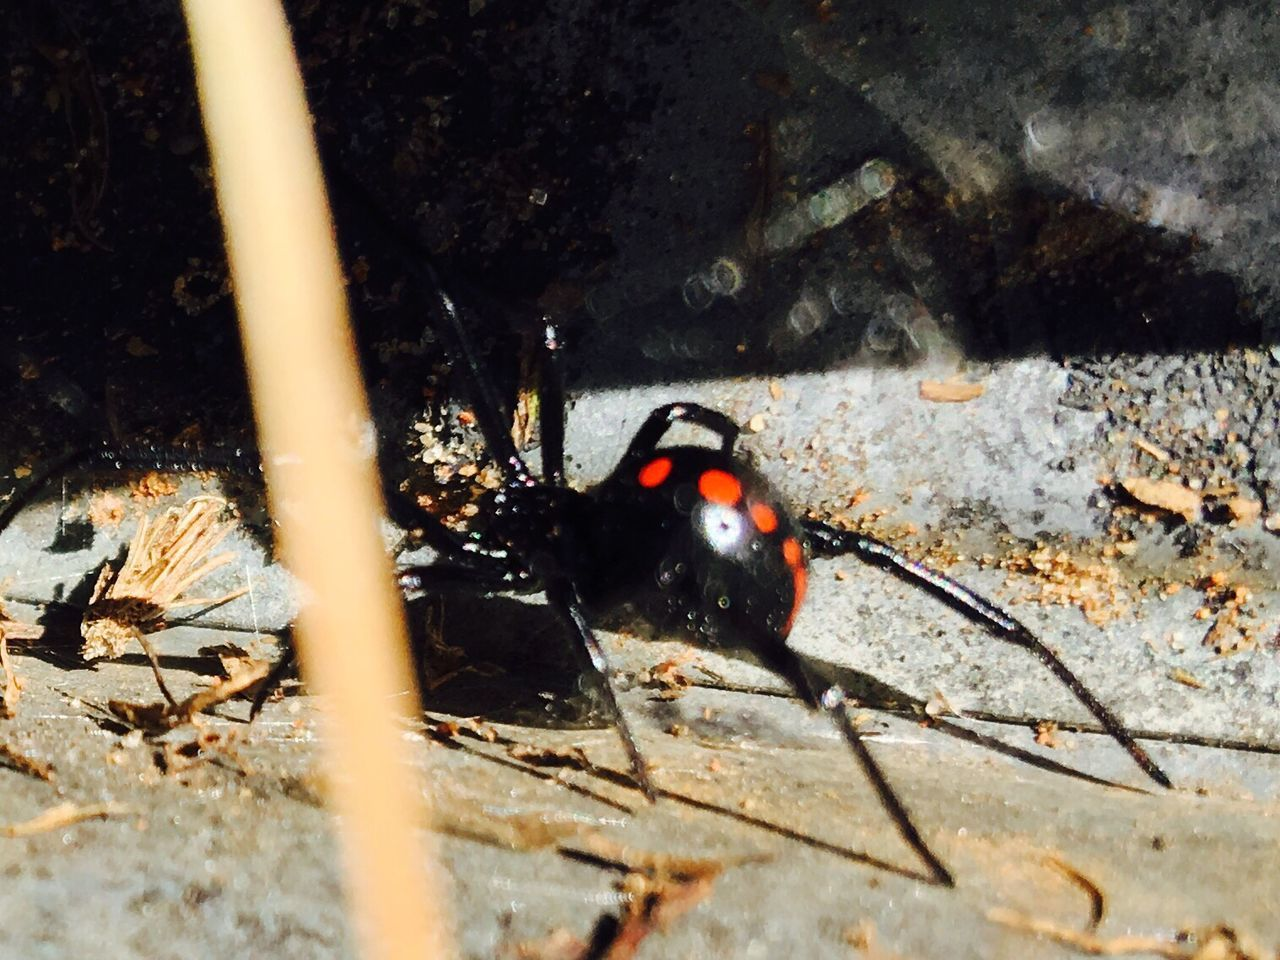 animal themes, one animal, animals in the wild, animal wildlife, day, no people, insect, outdoors, nature, close-up